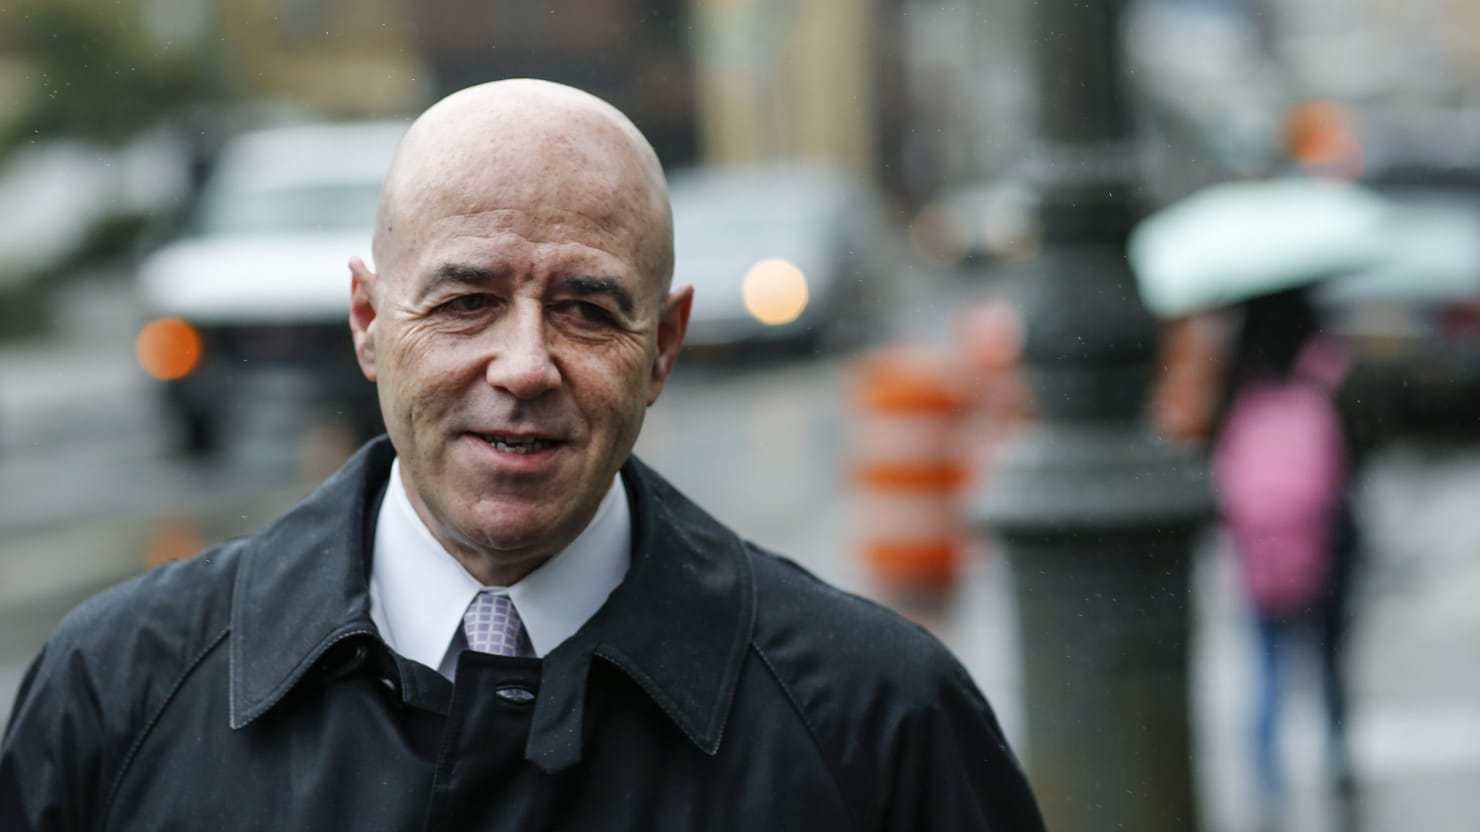 Trump Commutes Sentences of Former Illinois Gov. Rod Blagojevich and Former NYPD Boss Bernie Kerik